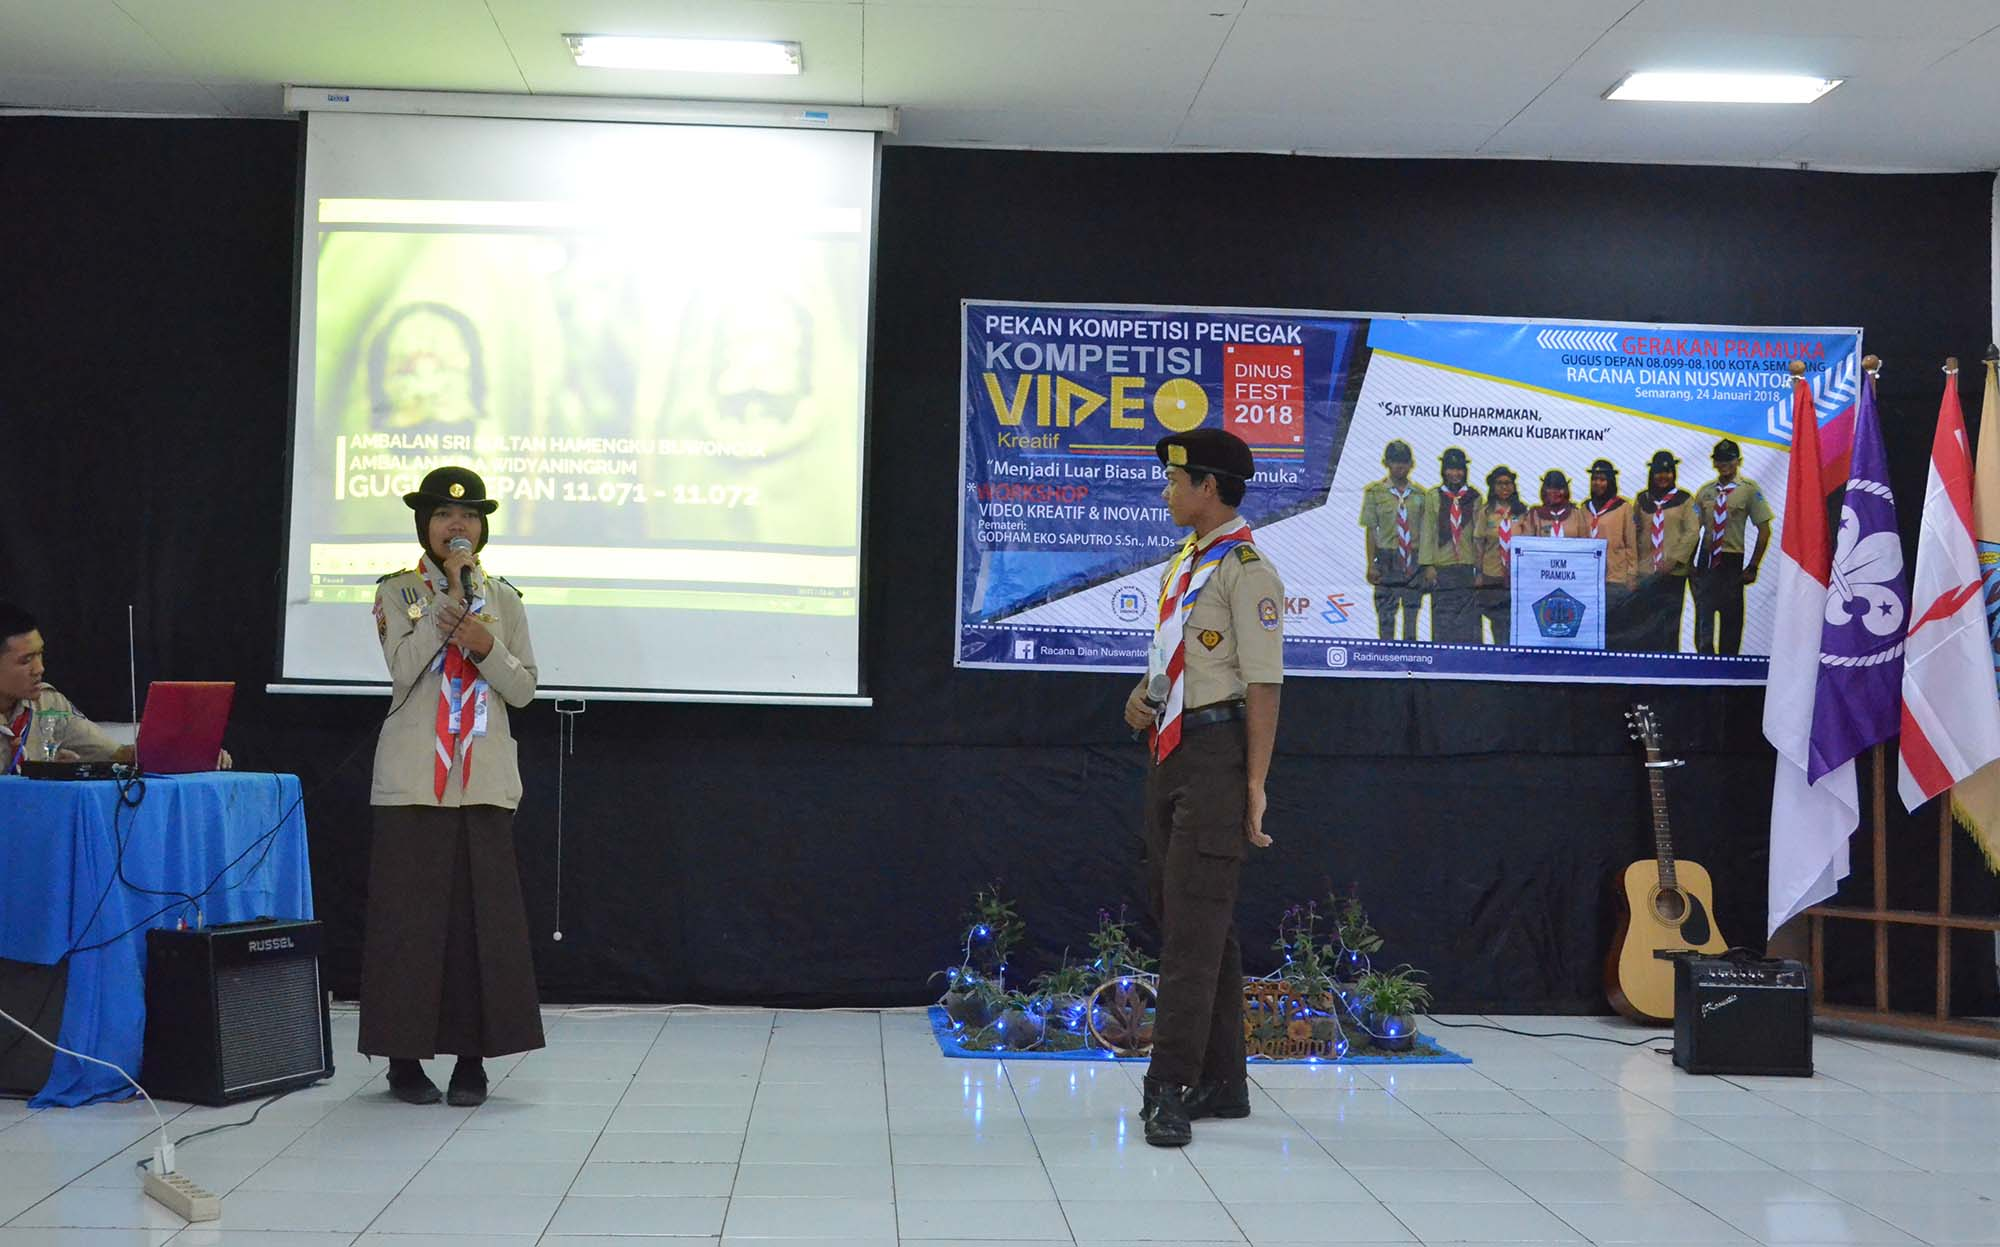 THE CREATIVITY OF SCOUT AND THE SKILL OF KSR IN DINUSFEST 2018